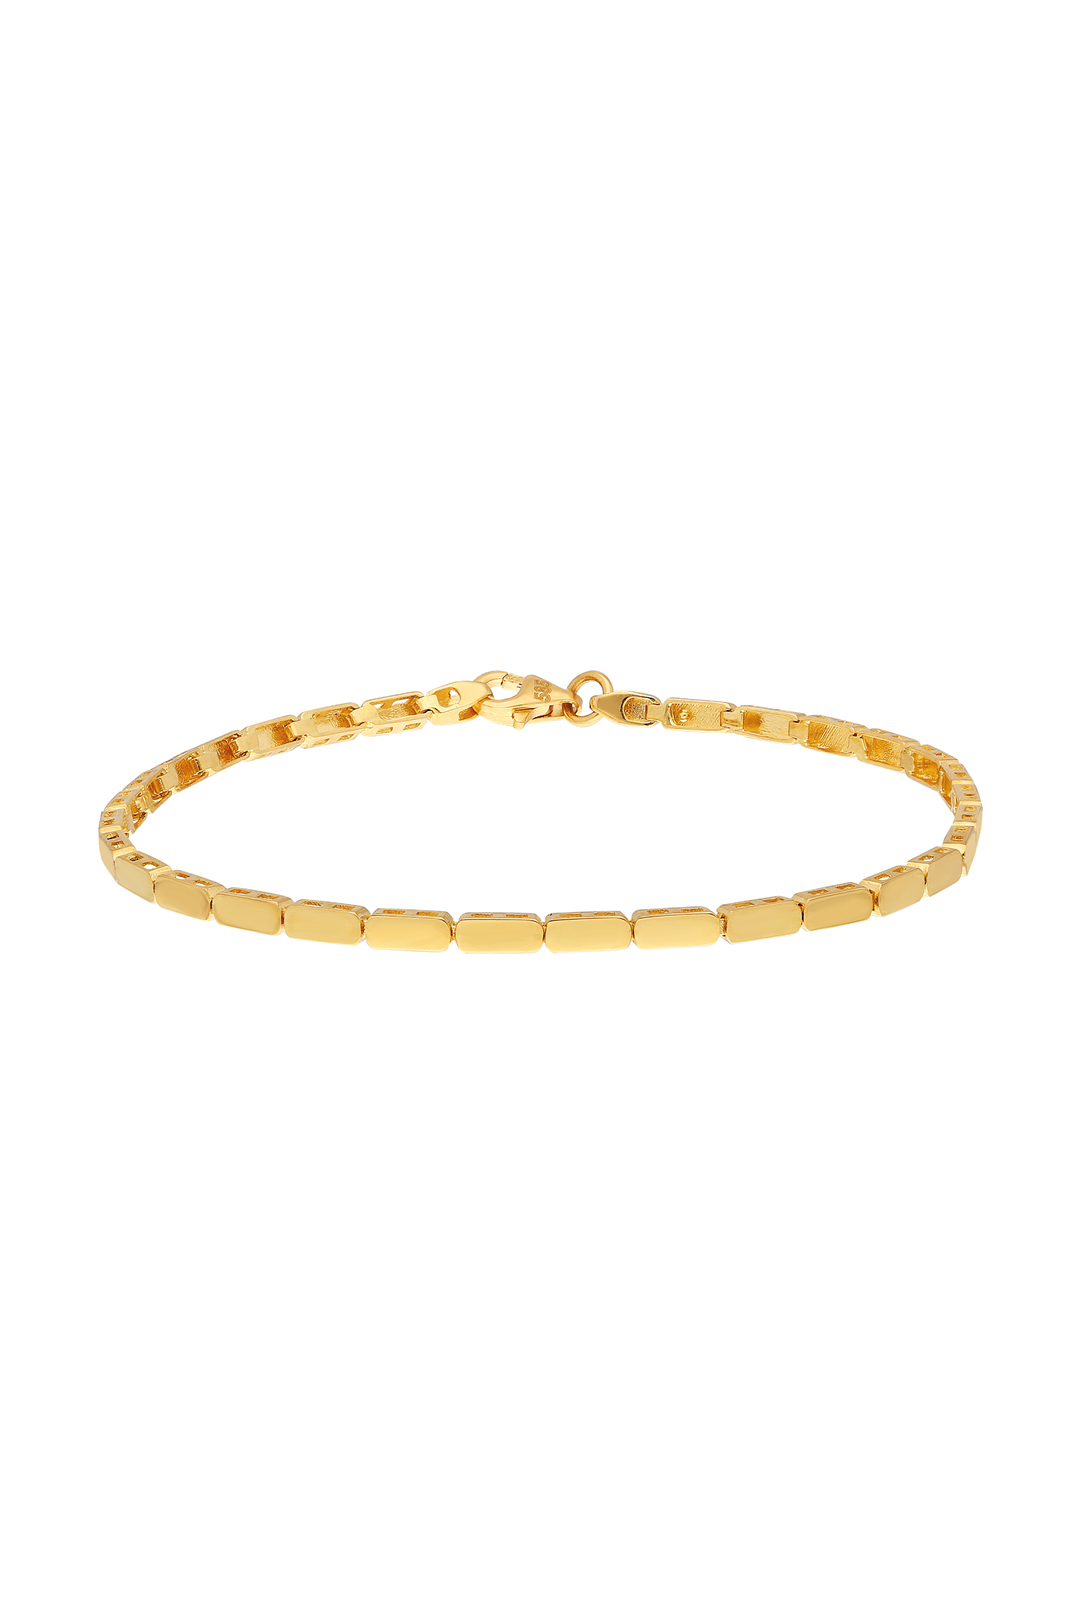 OVAL SHAPES RETRO BRACELET